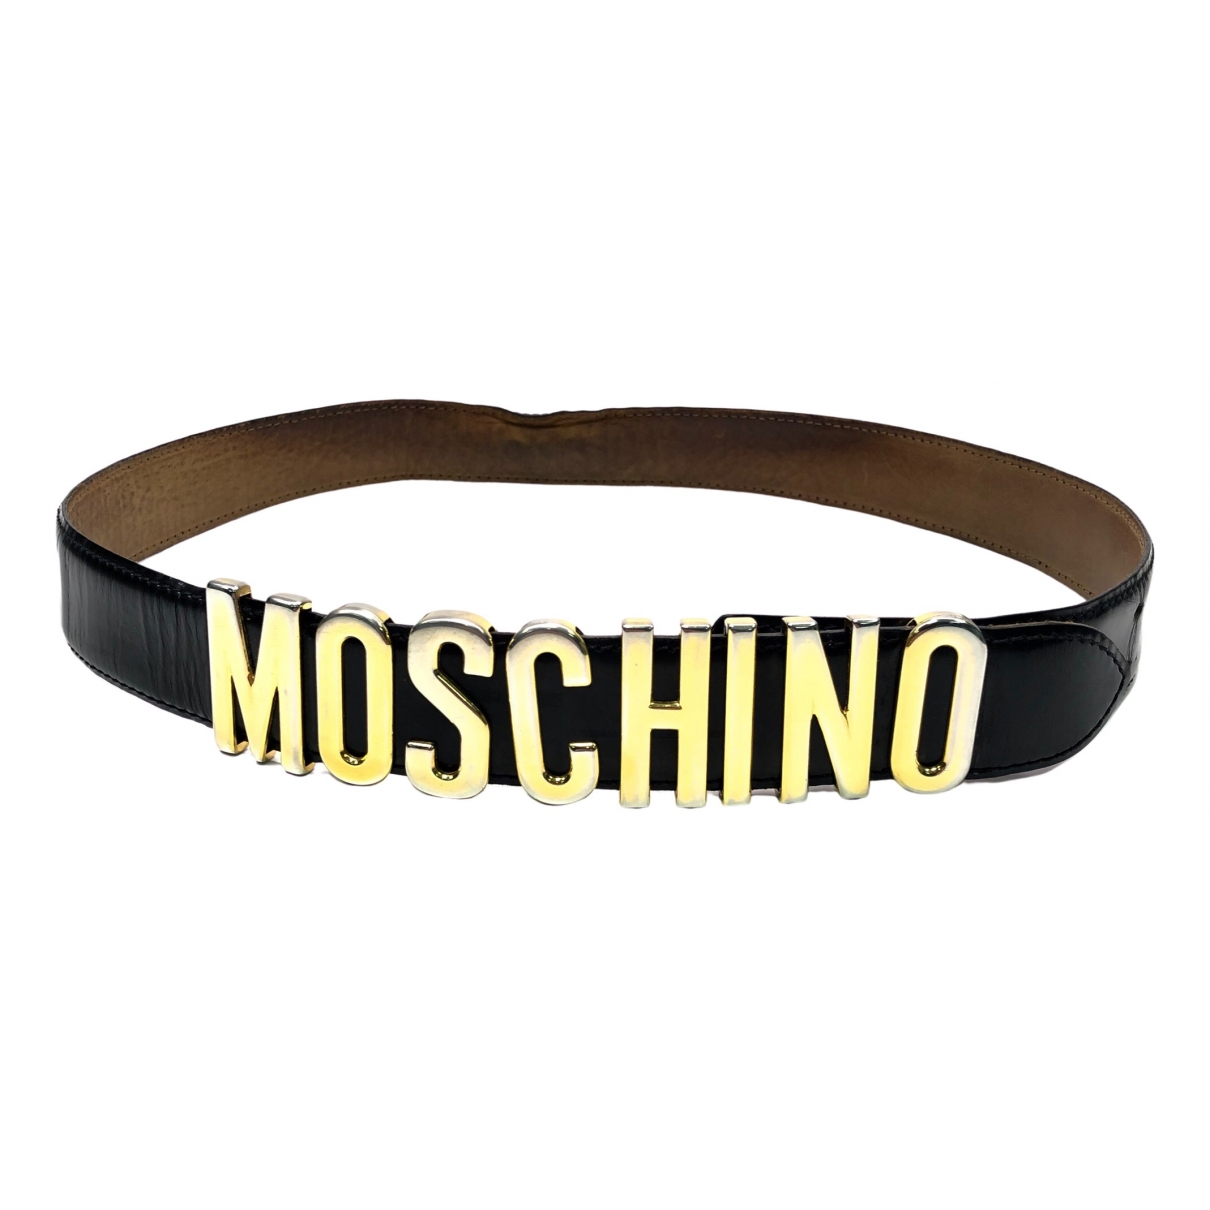 Moschino \N Black Leather belt for Women L International